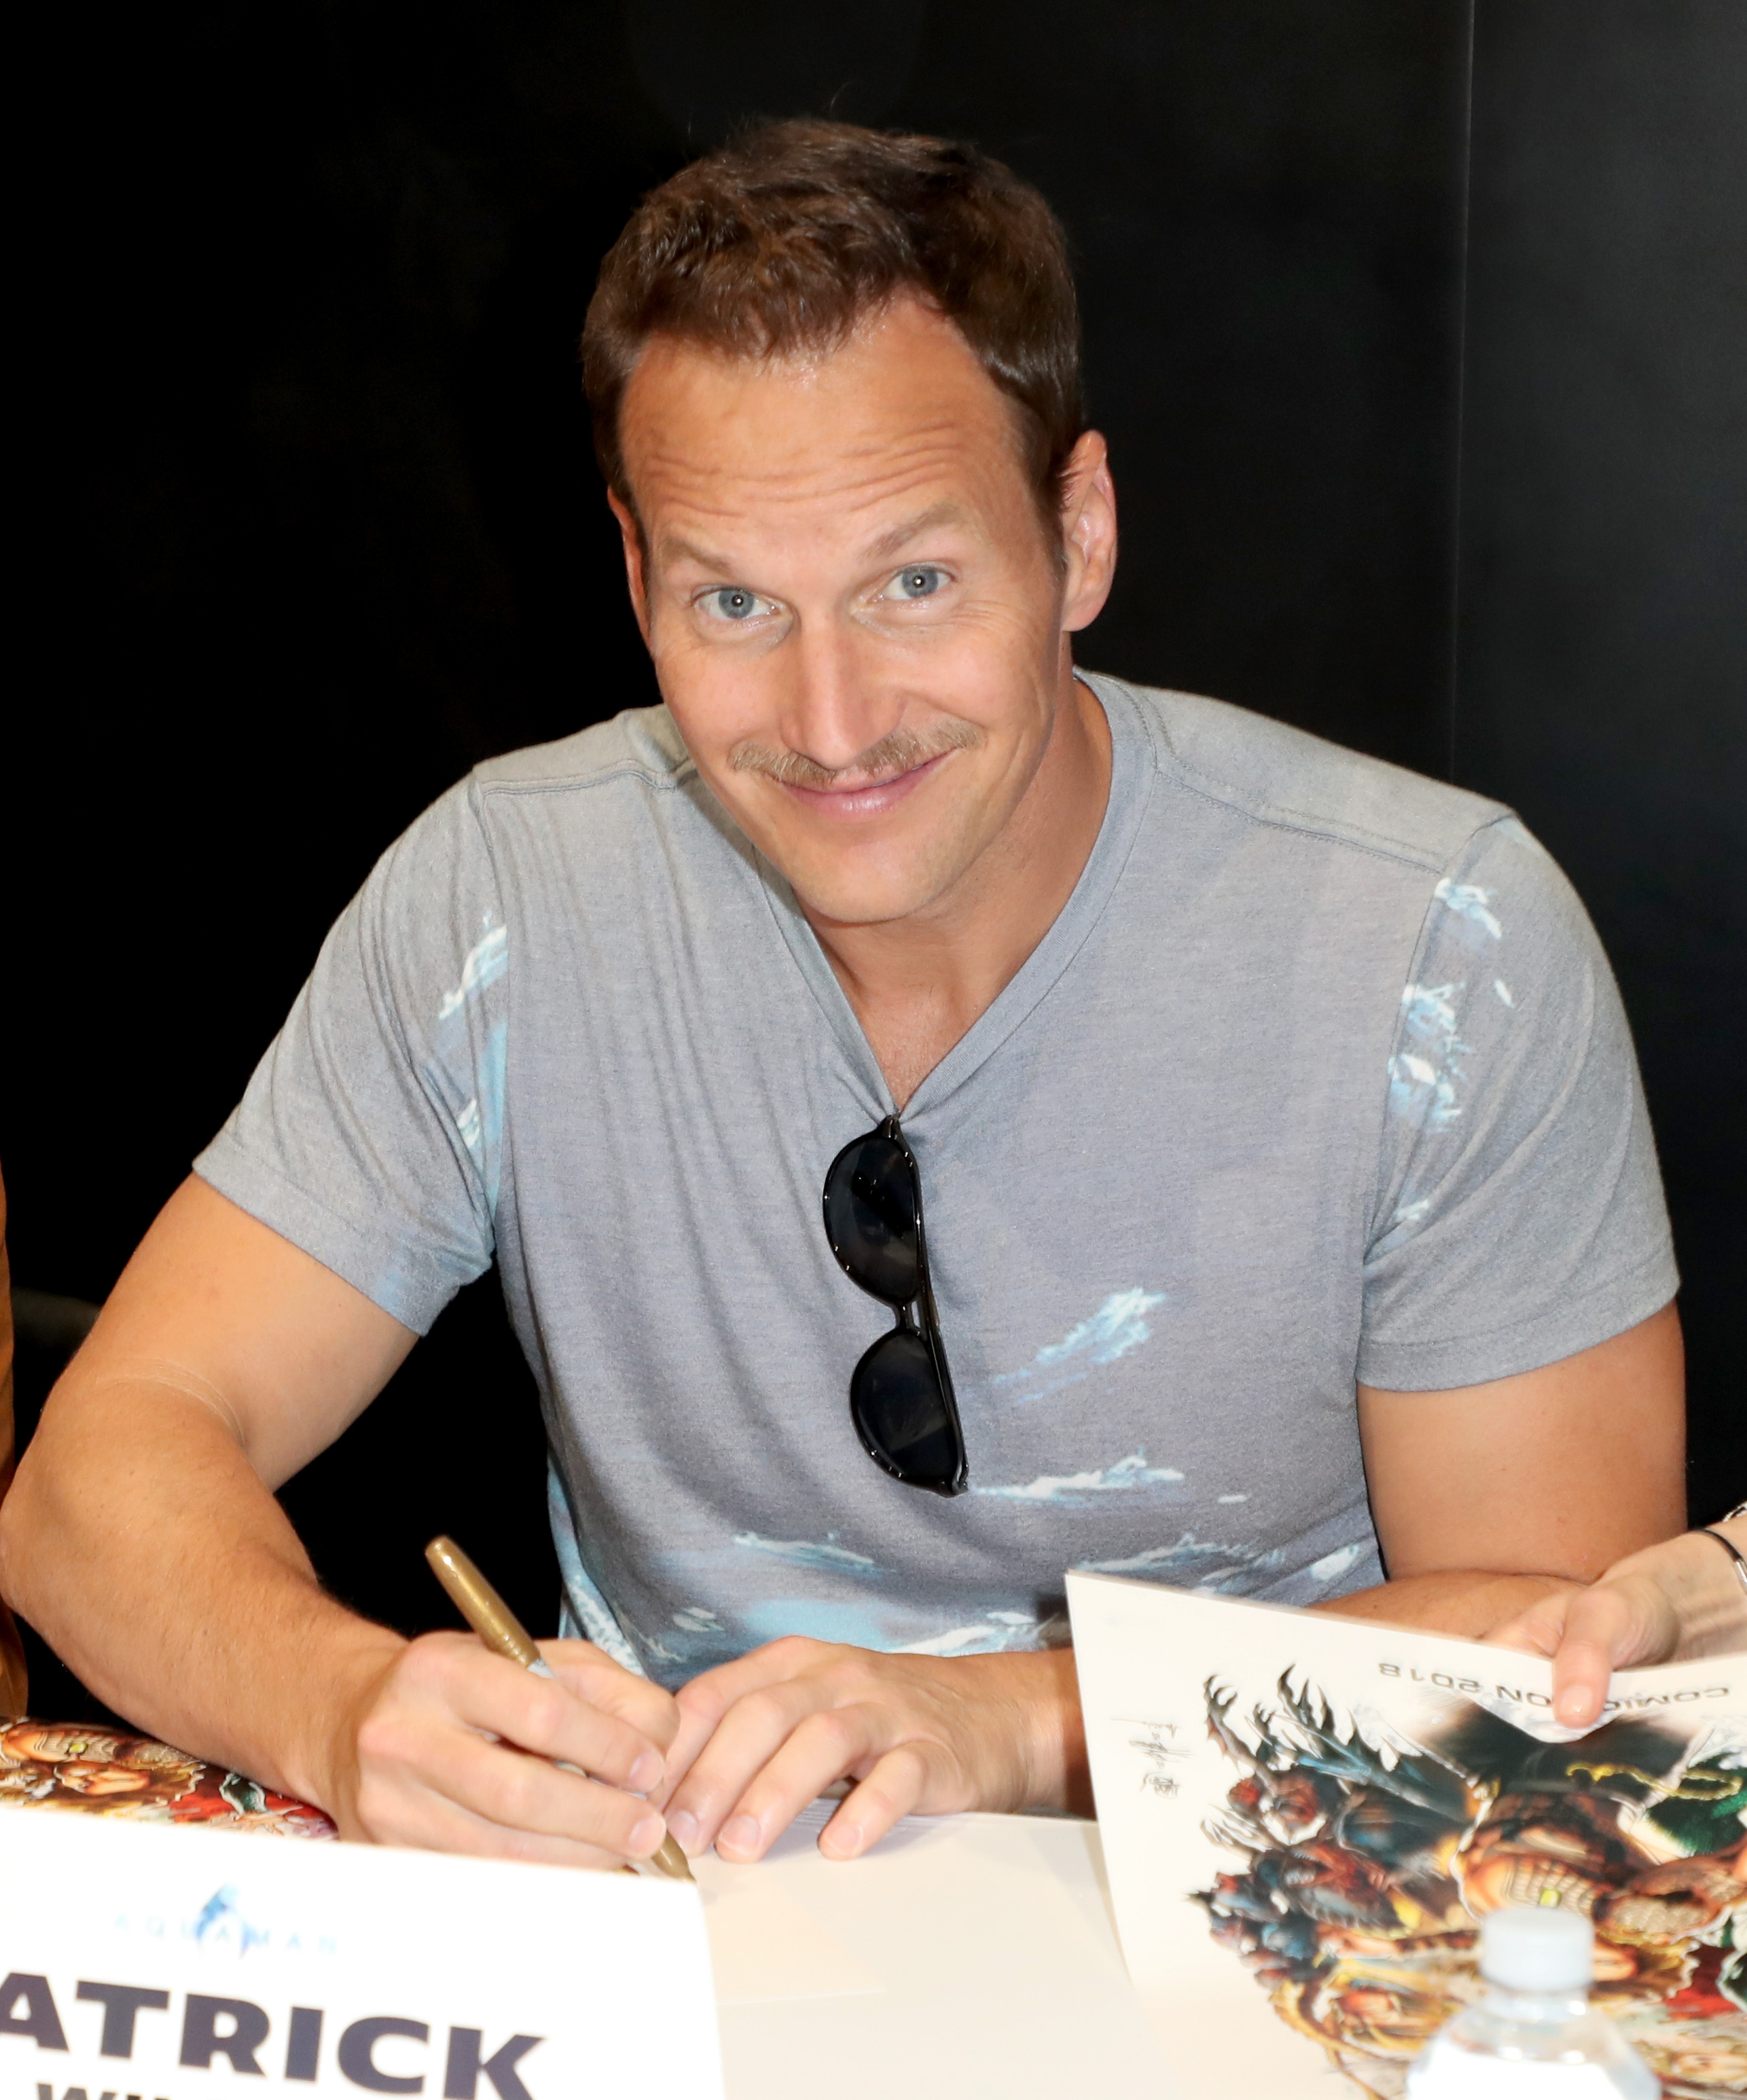 Patrick Wilson attends DC Entertainment's Warner Bros. Pictures 'Aquaman' Autograph Signing during Comic-Con International 2018 at San Diego Convention Center on July 21, 2018 in San Diego, California.